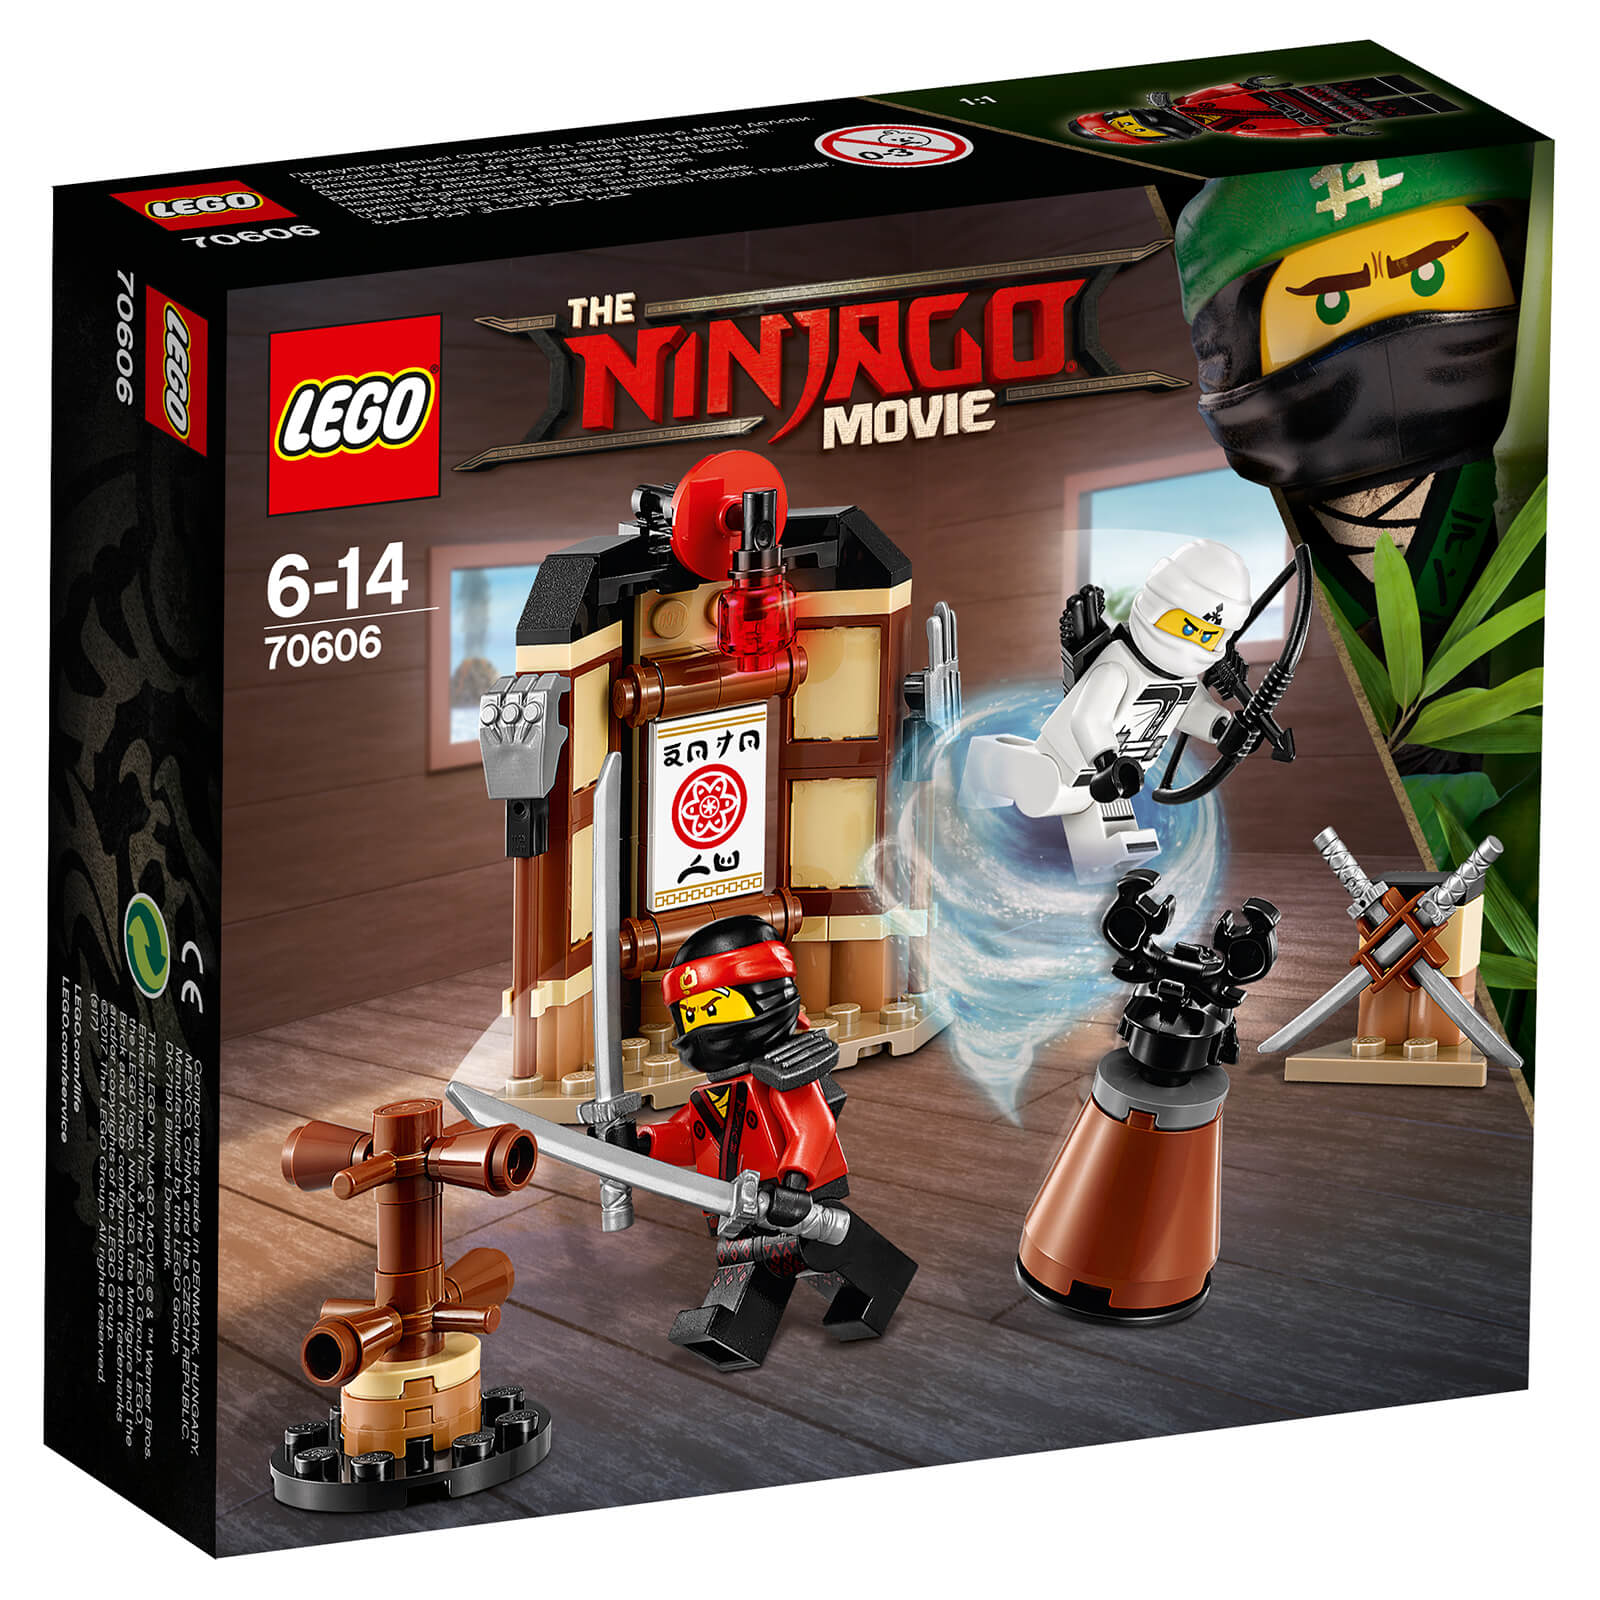 The LEGO Ninjago Movie: Spinjitzu Training (70606)